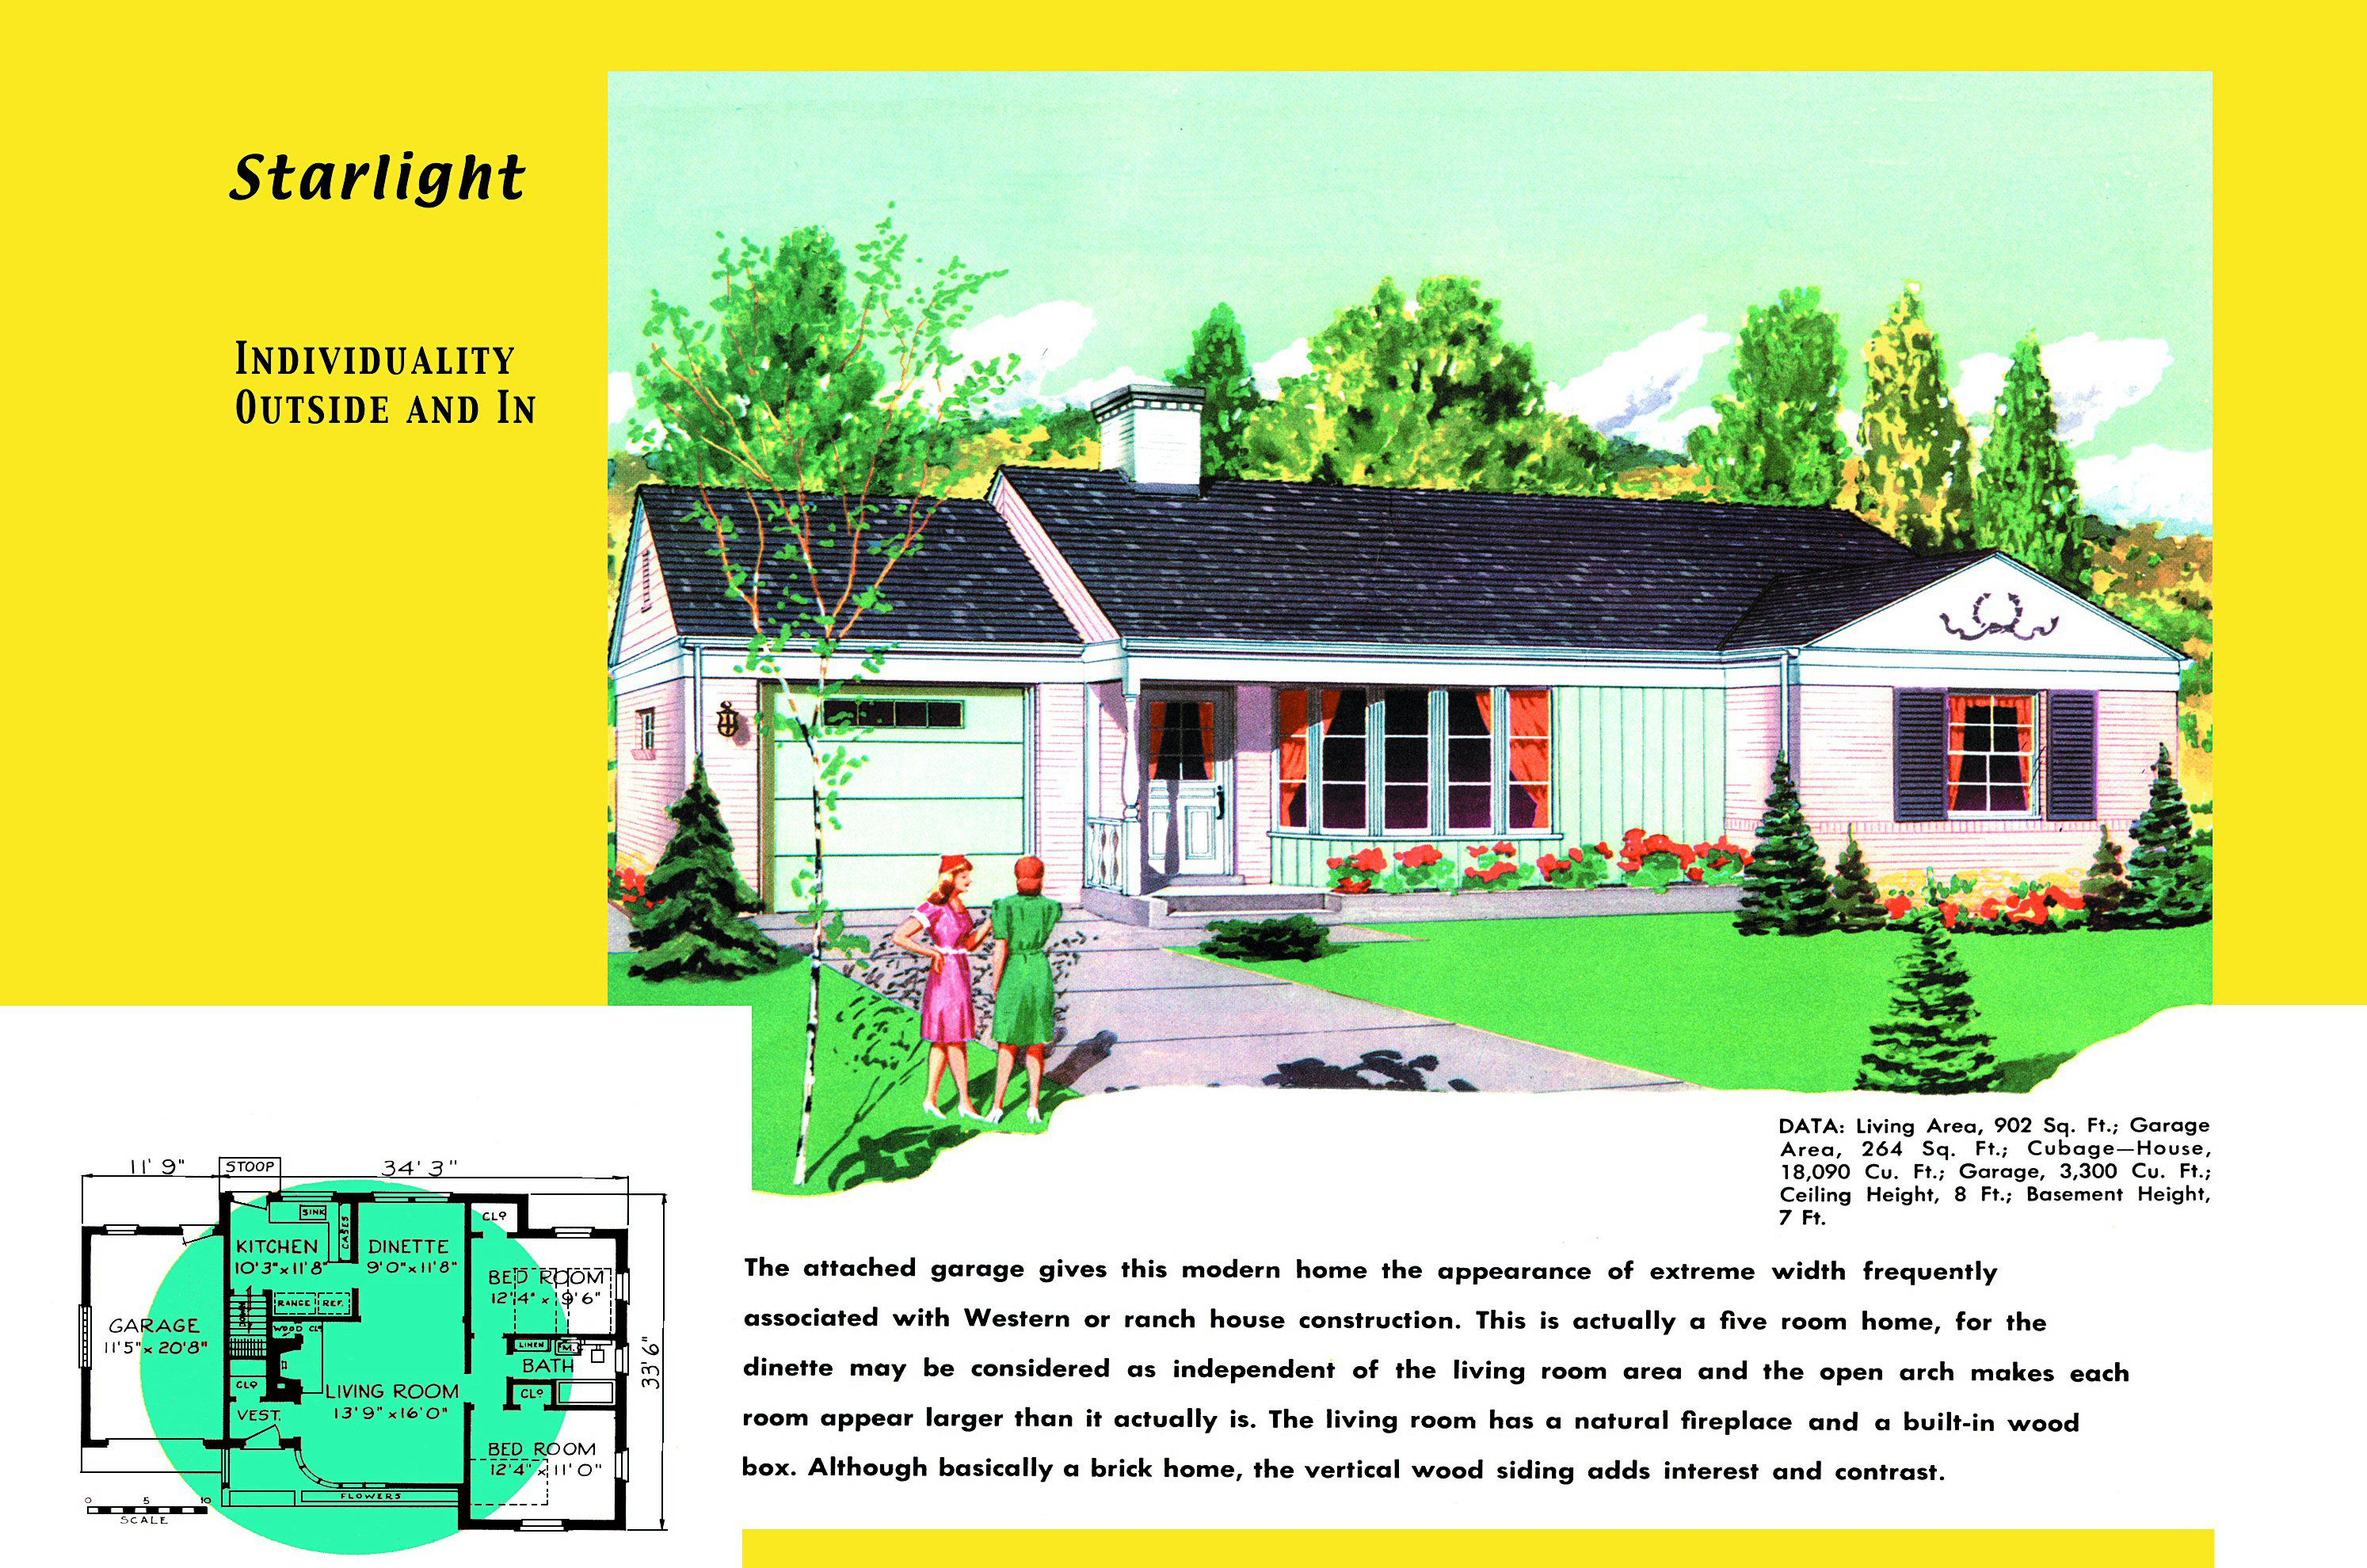 1950s House Plans for Por Ranch Homes on french house plans with dormers, small house plans with dormers, country home plans with dormers,